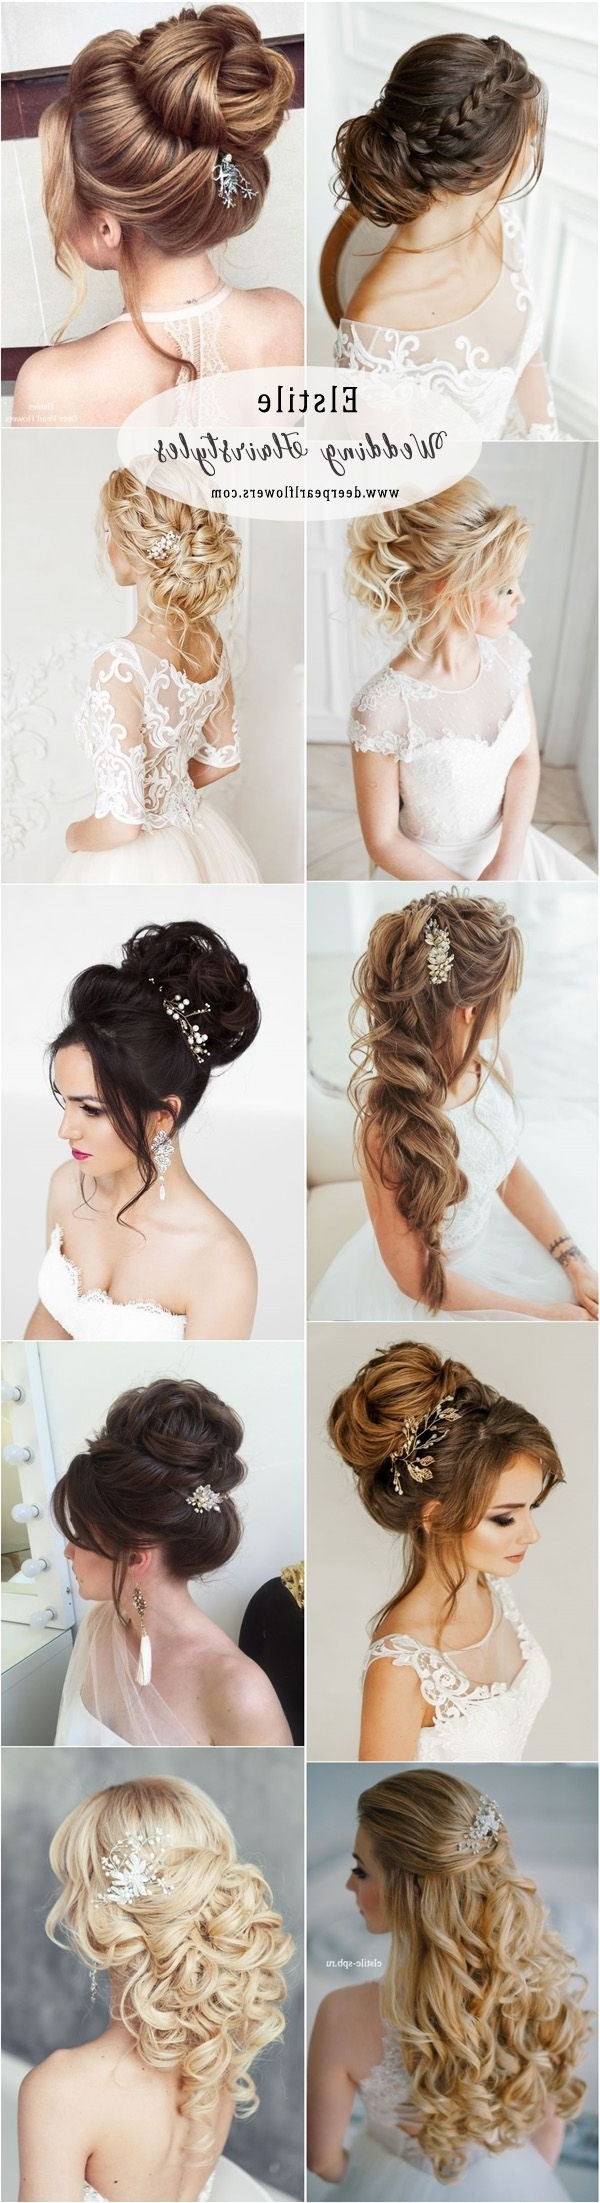 72 Best Long Wedding Hairstyles From Top 8 Hairstylists (Gallery 2 of 15)